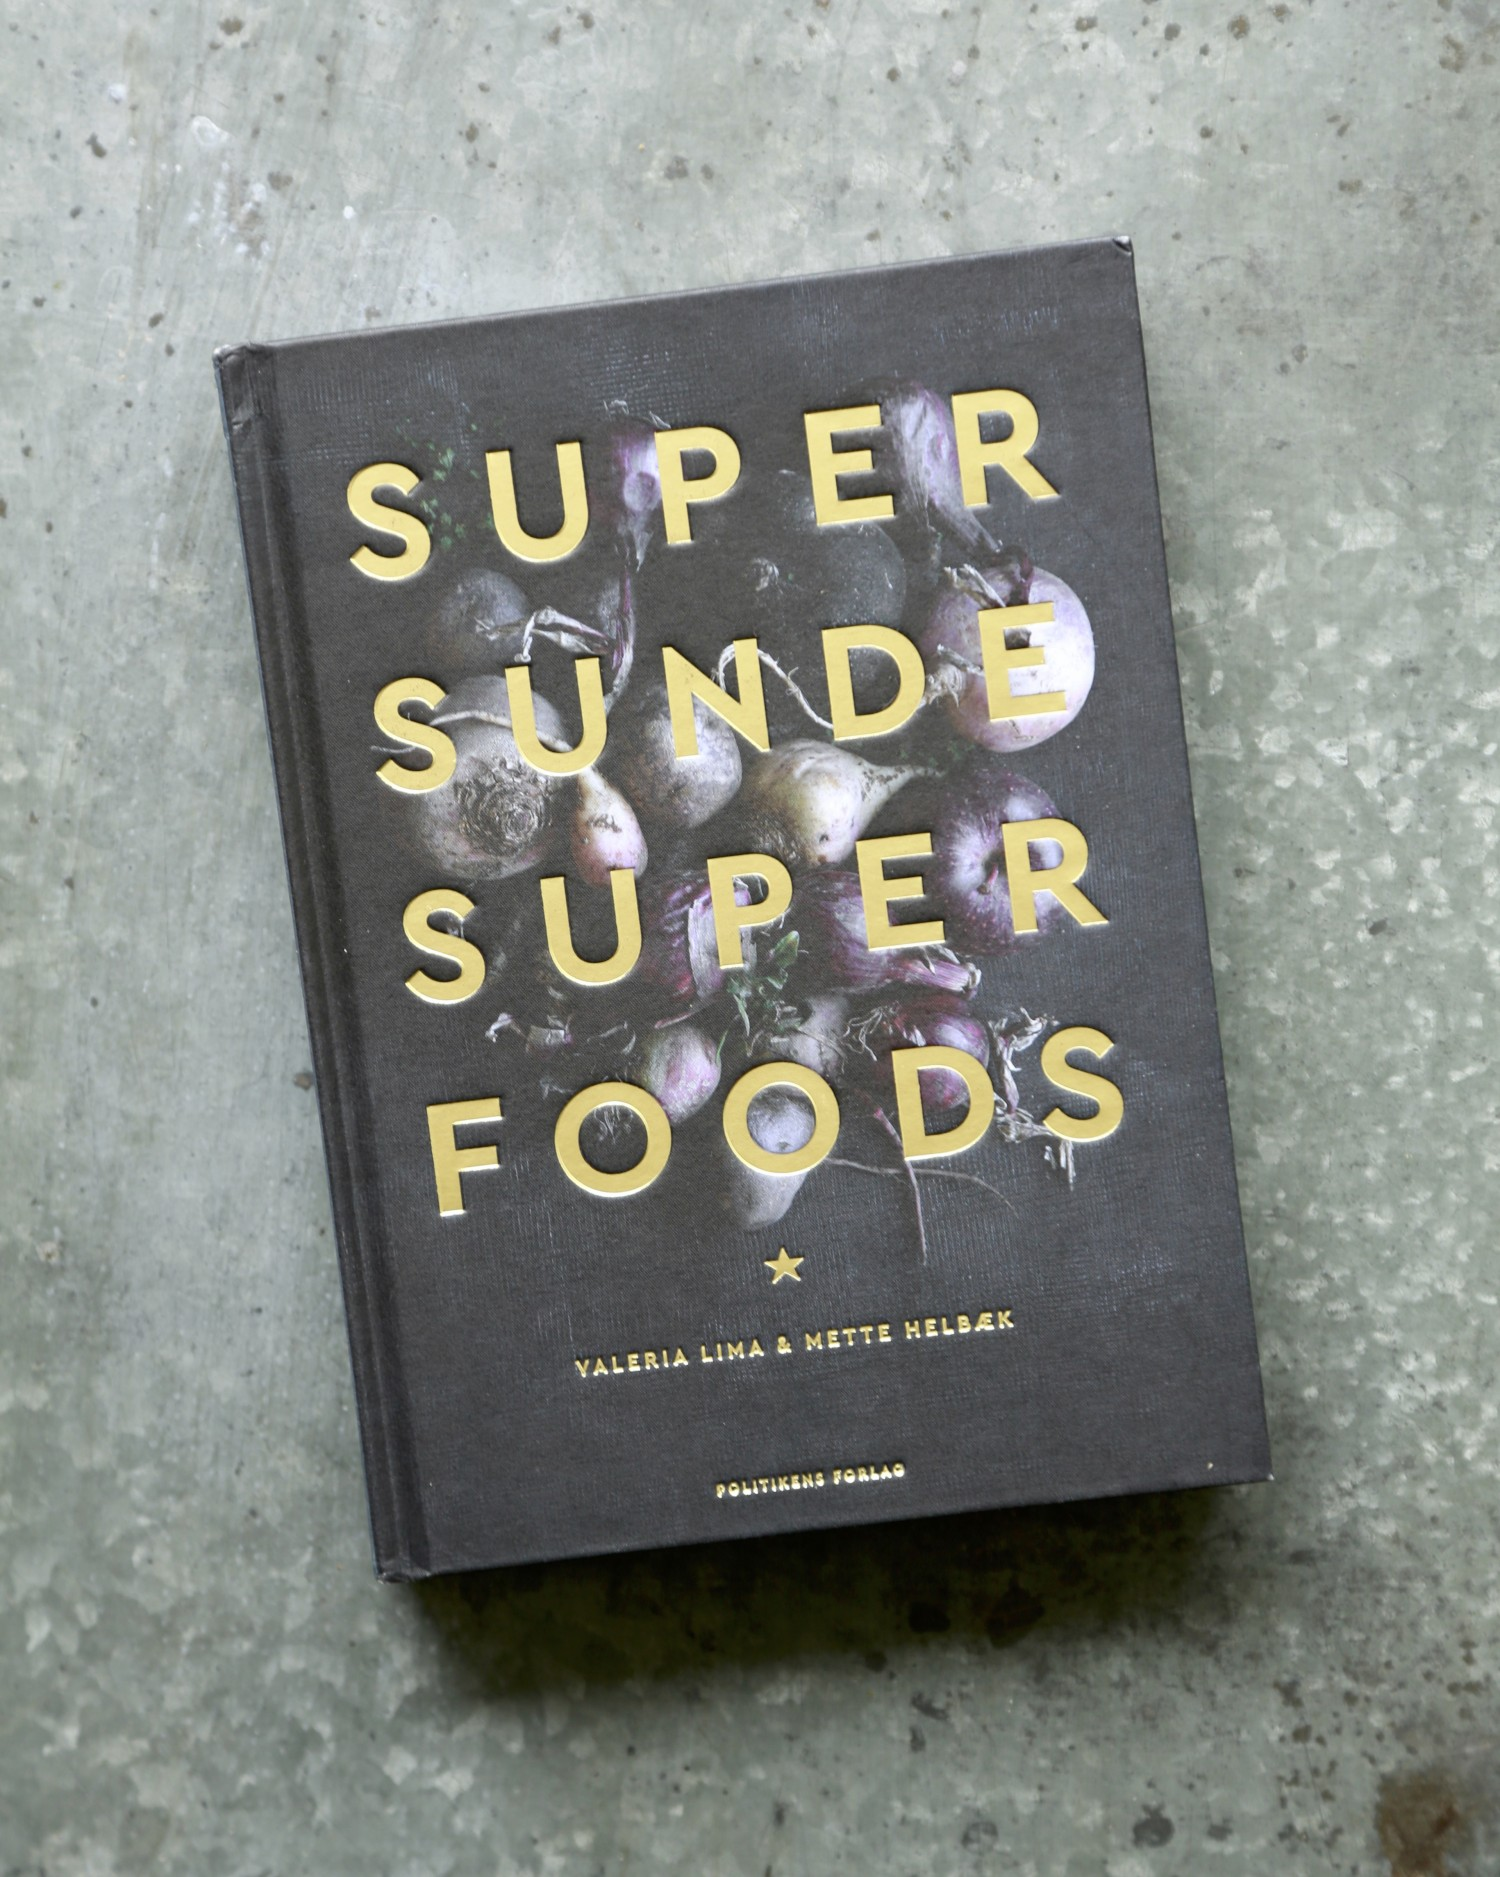 supersunde-superfoods